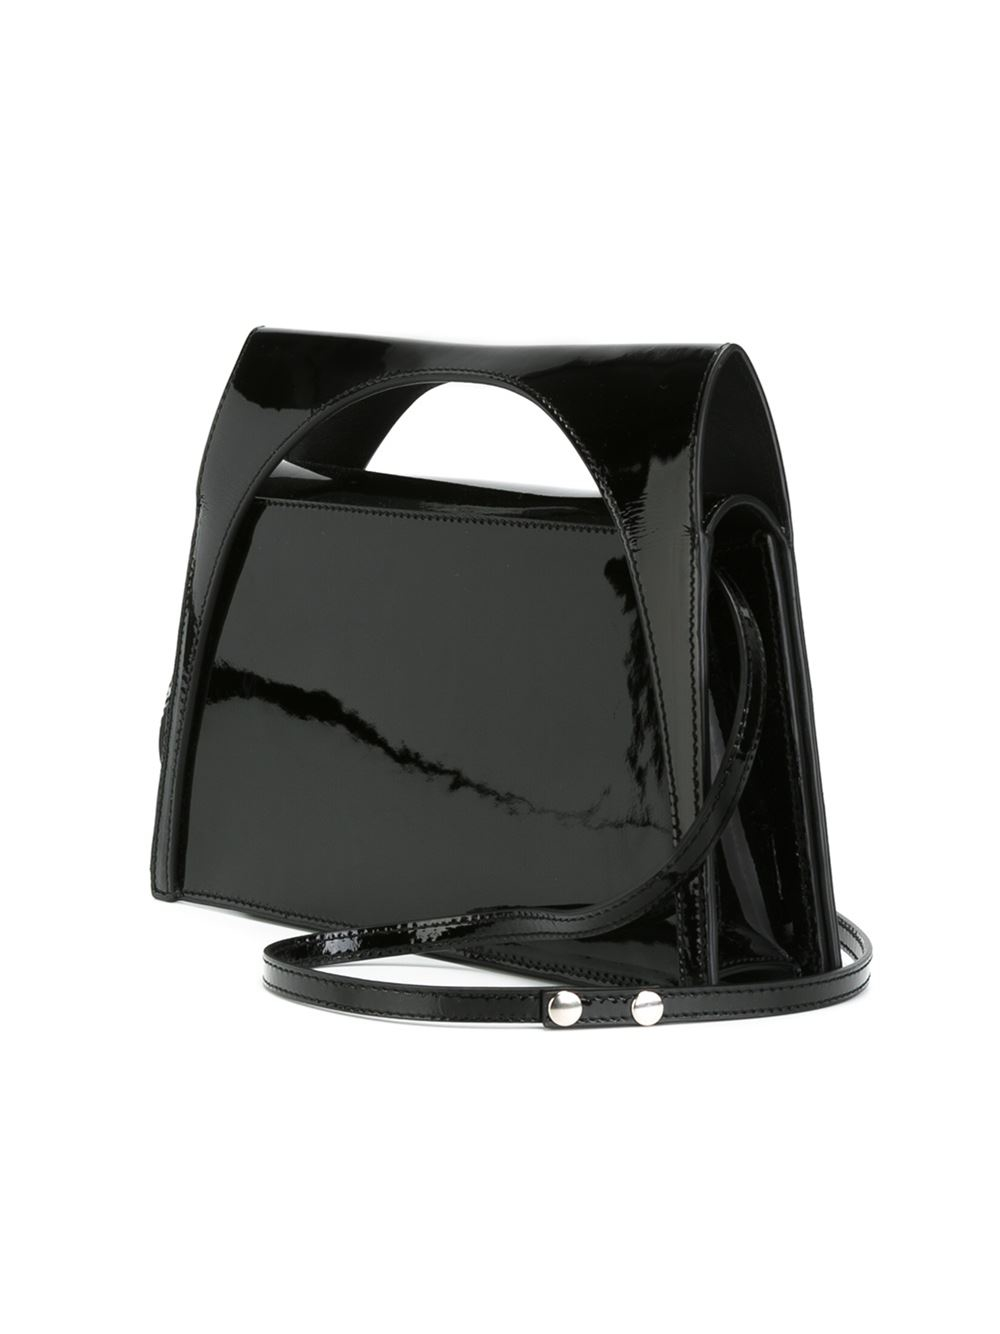 JW Anderson Small Trapeze Shape Tote in Black